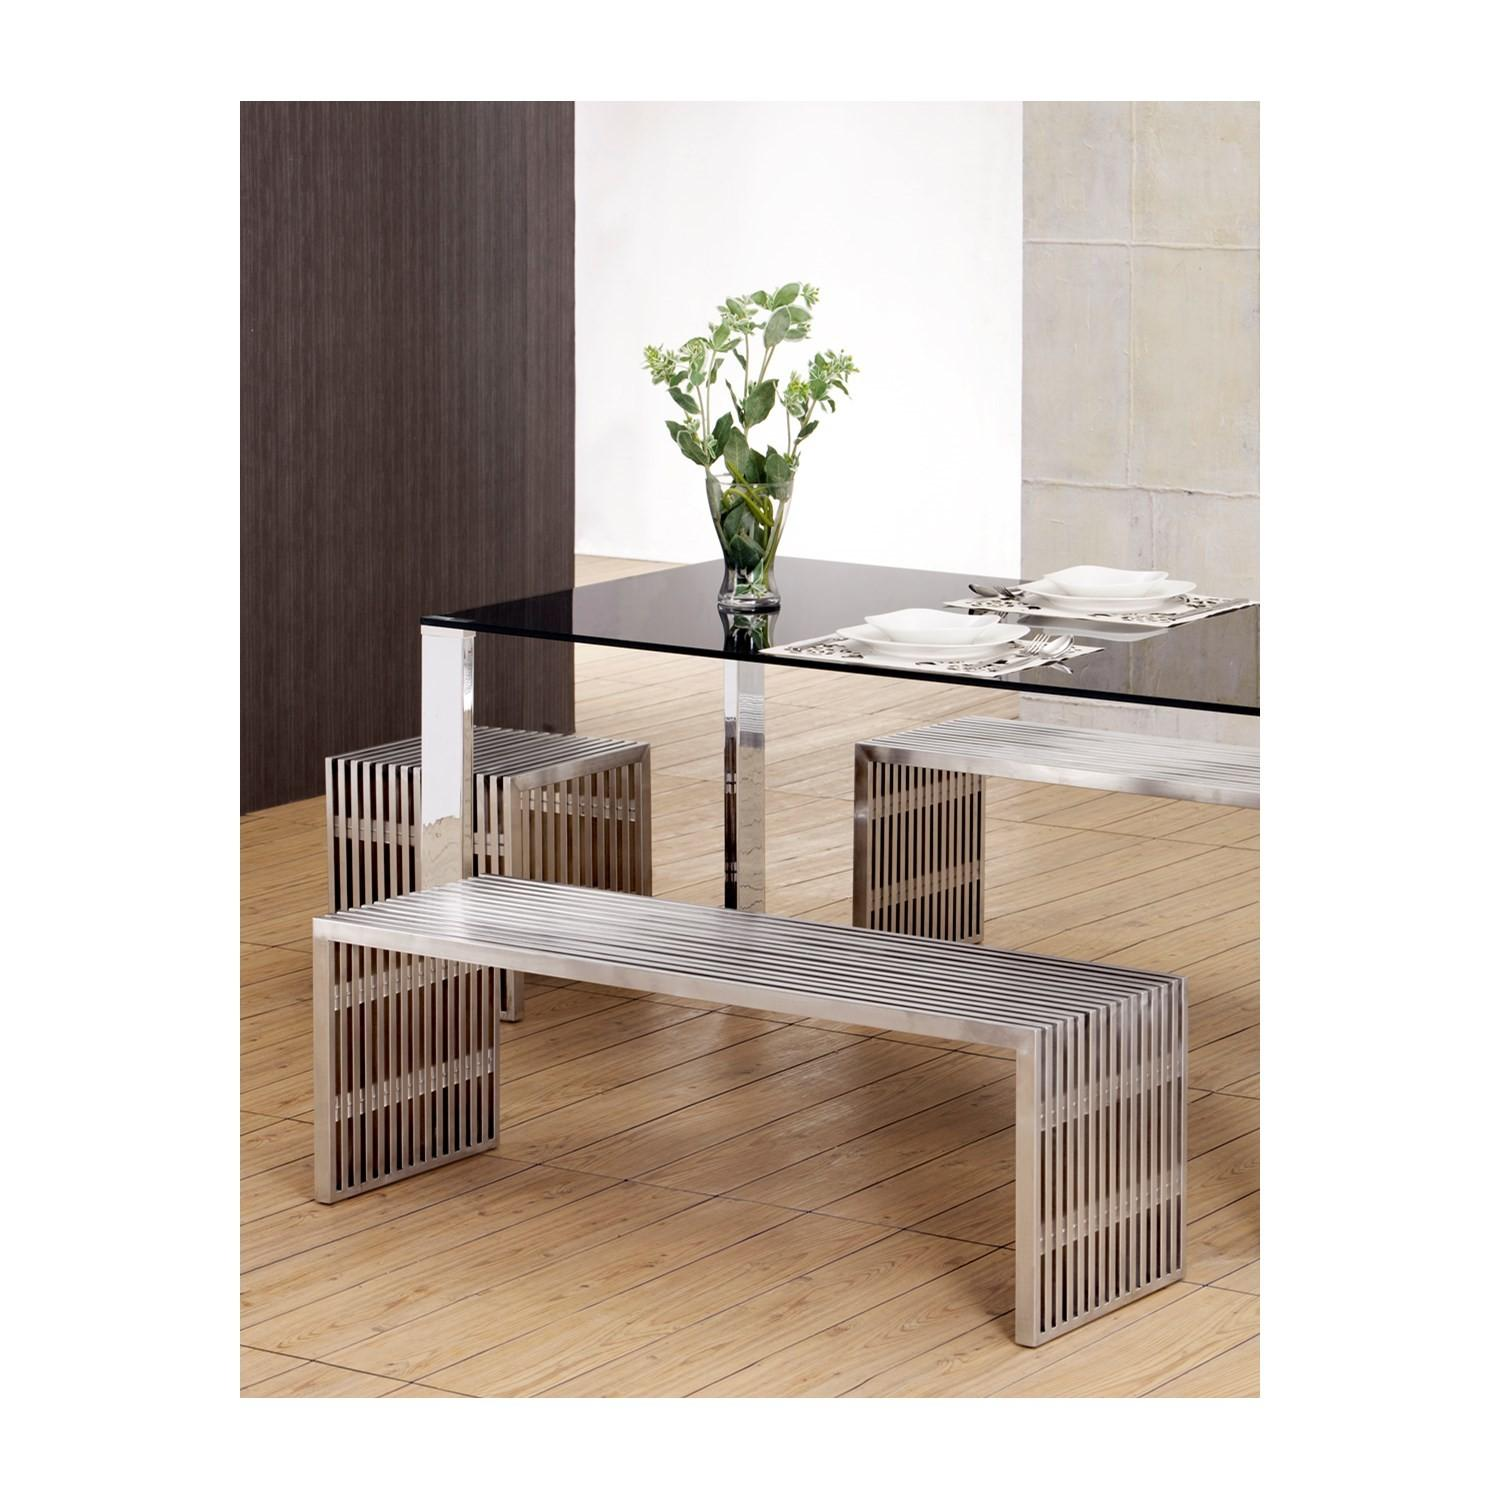 Zuo Modern Furniture Novel Single Bench